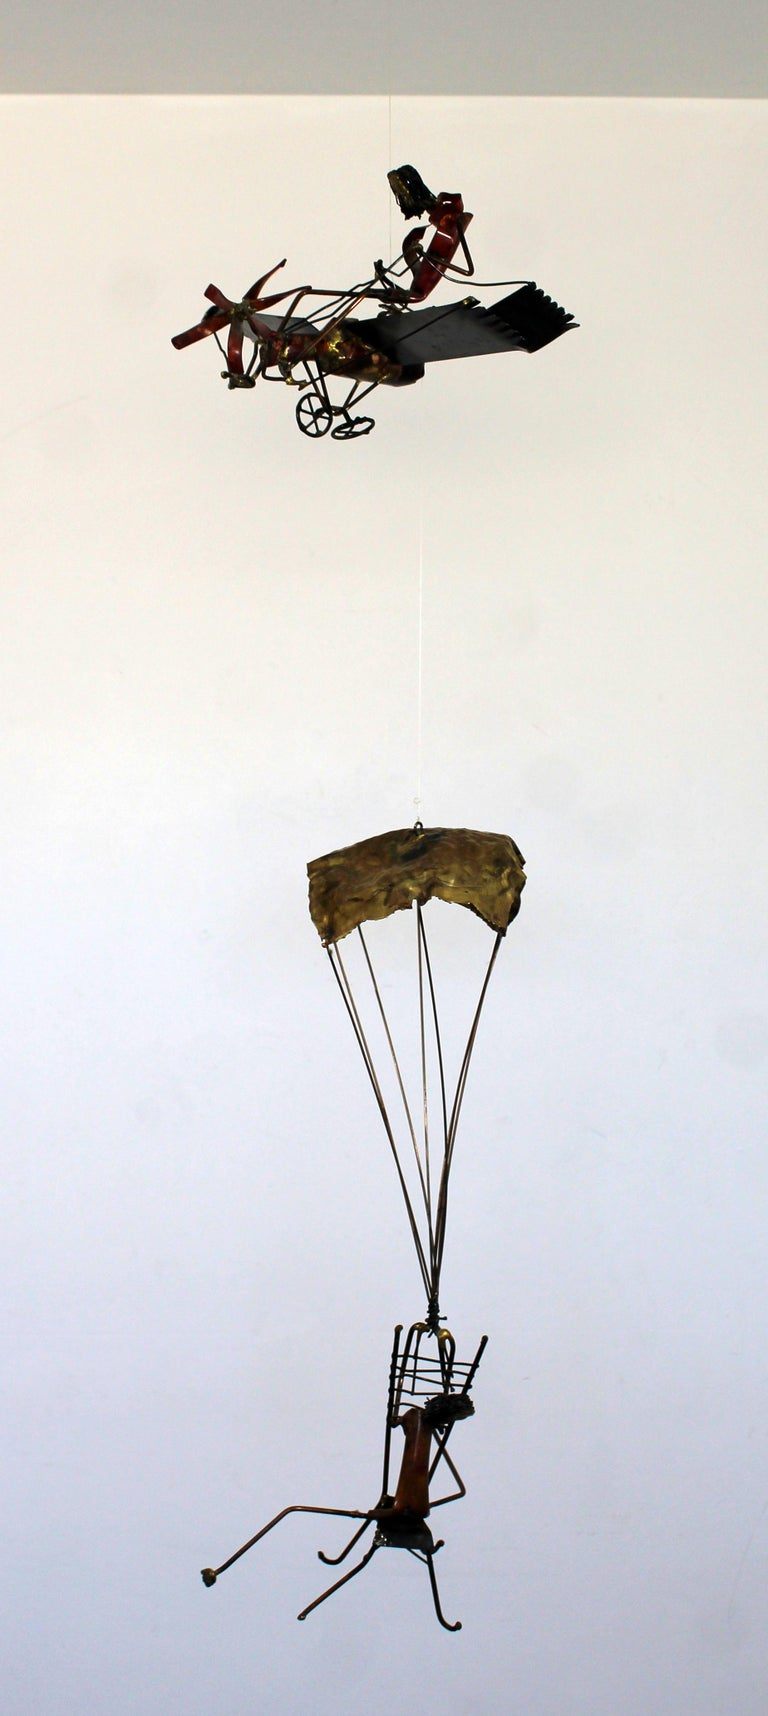 For your consideration is a whimsical, Brutalist brass wall sculpture of a man in a plane and a man hanging by a parachute beneath, in the style of Curtis Jere, circa 1970s. In excellent vintage condition. The dimensions are 12